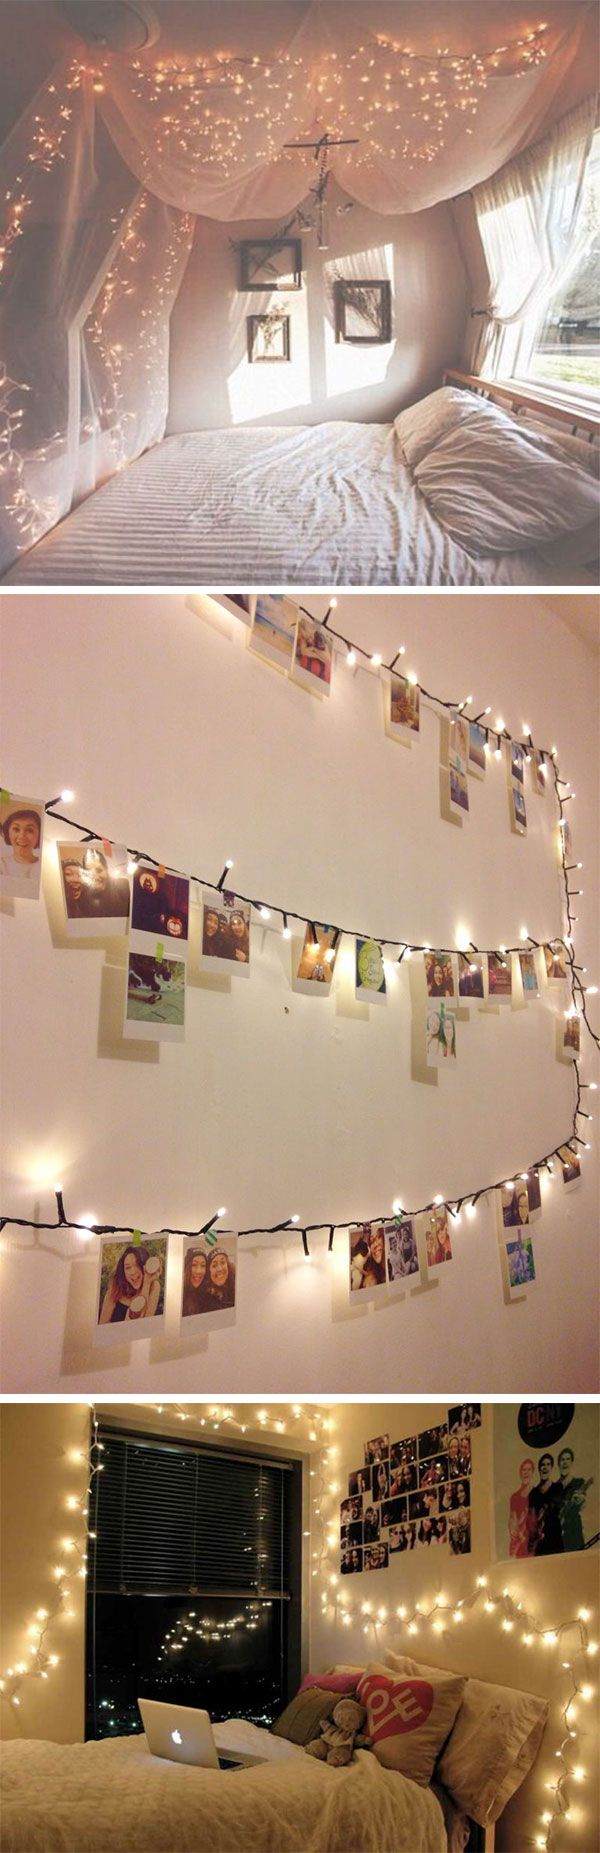 Cool rooms tumblr - 13 Ways To Use Fairy Lights To Make Your Home Look Magical